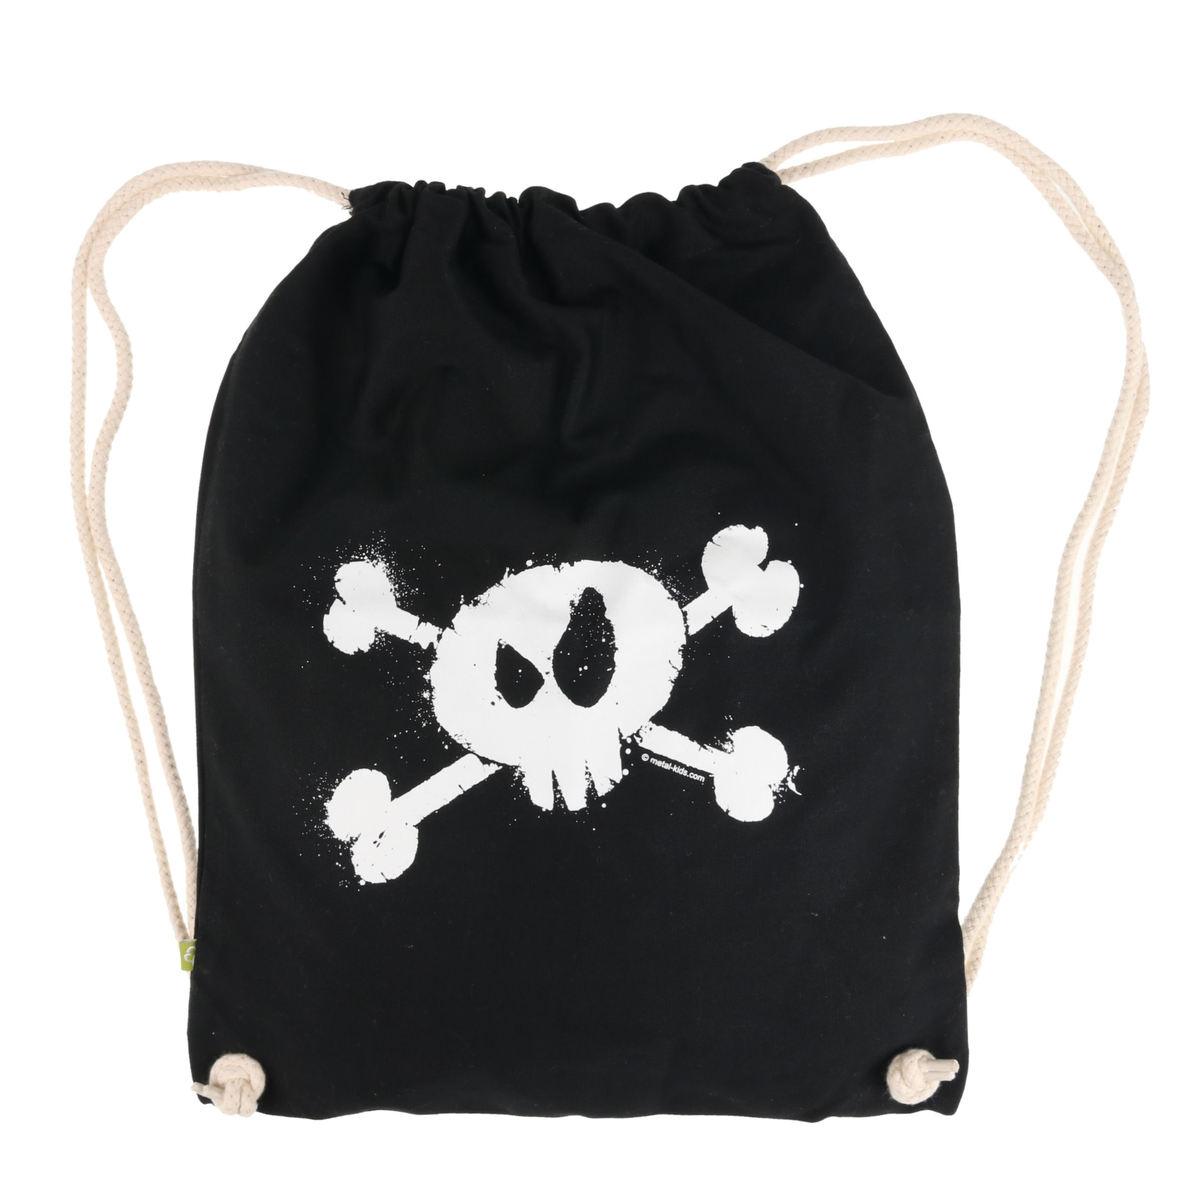 vak Splashed Skull - Metal-Kids - 577-130-8-7